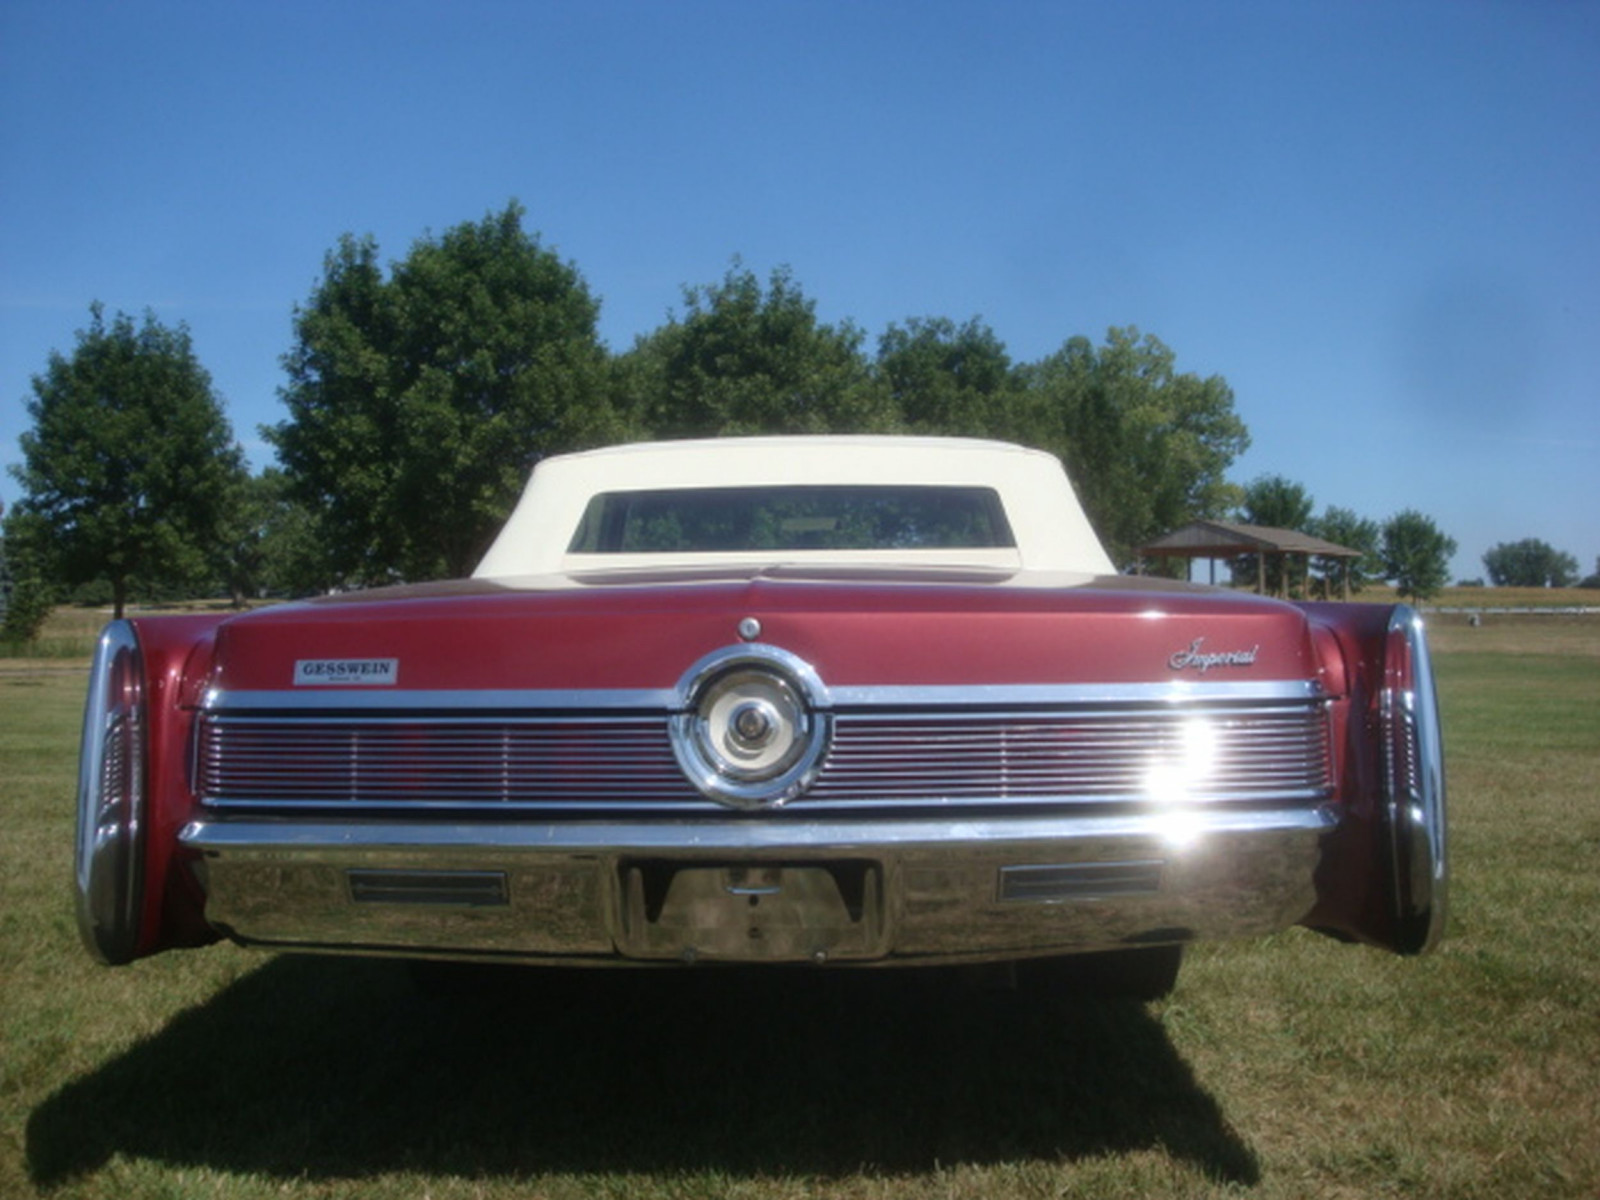 1967 Chrysler Imperial Convertible - Image 14